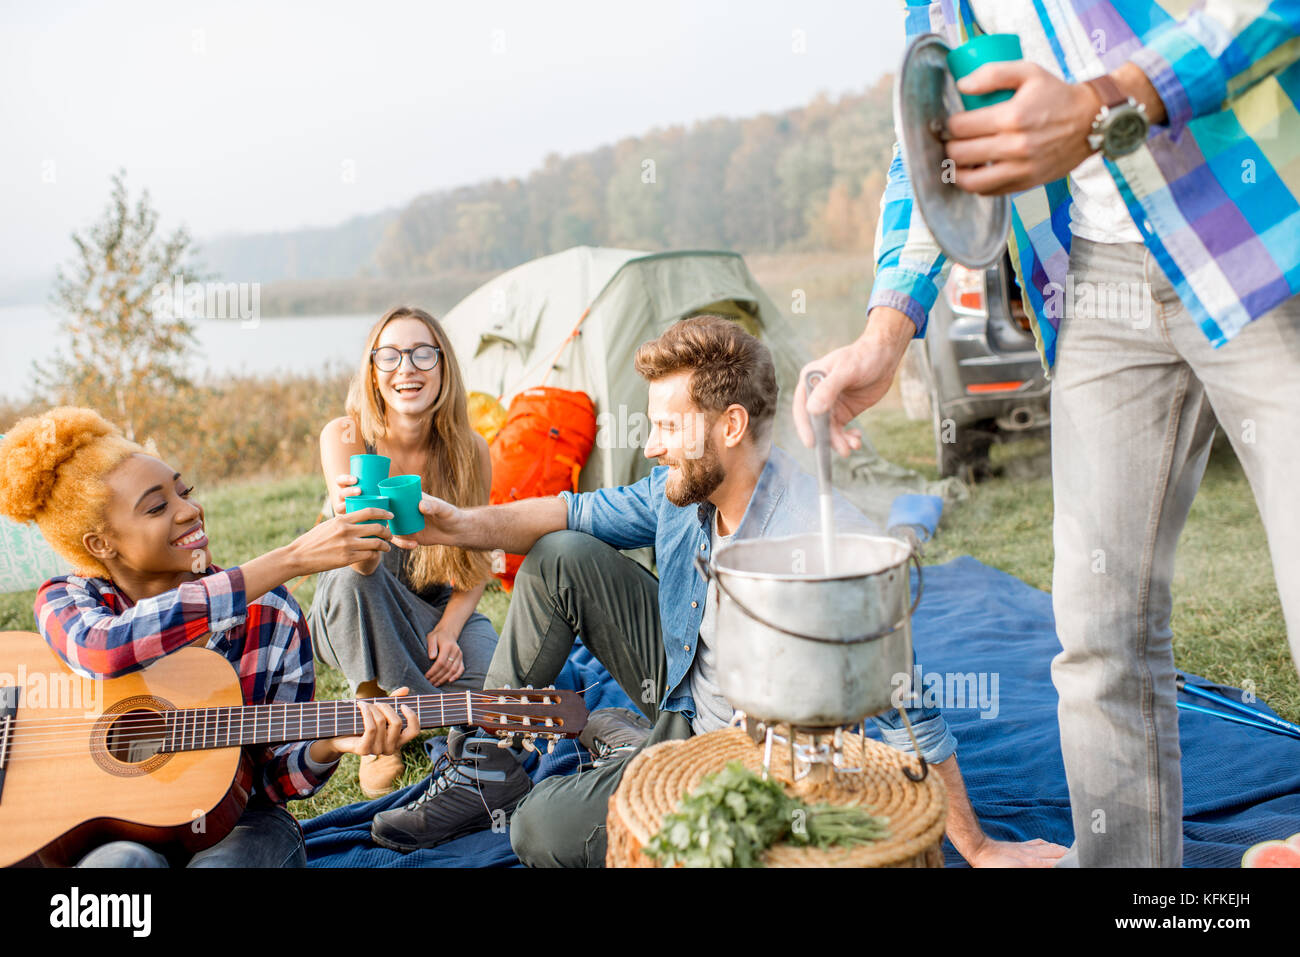 Multi ethnic group of friends dressed casually clinking glasses during the dinner outdoors at the camping - Stock Image